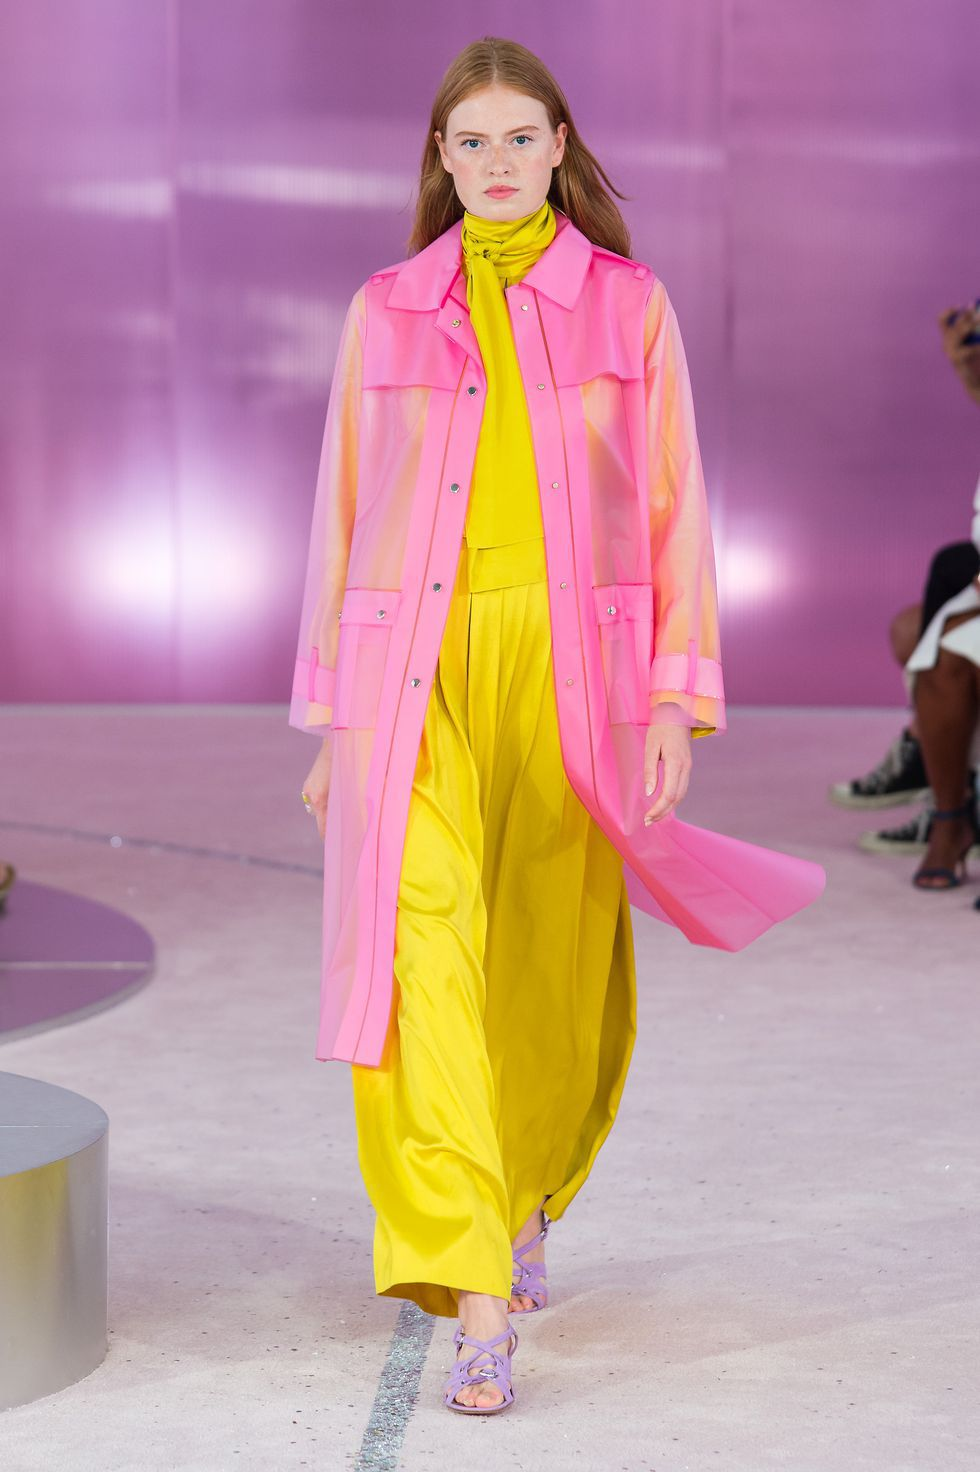 Fantastic Plastic - Summer and Spring 2019 Runway Trends